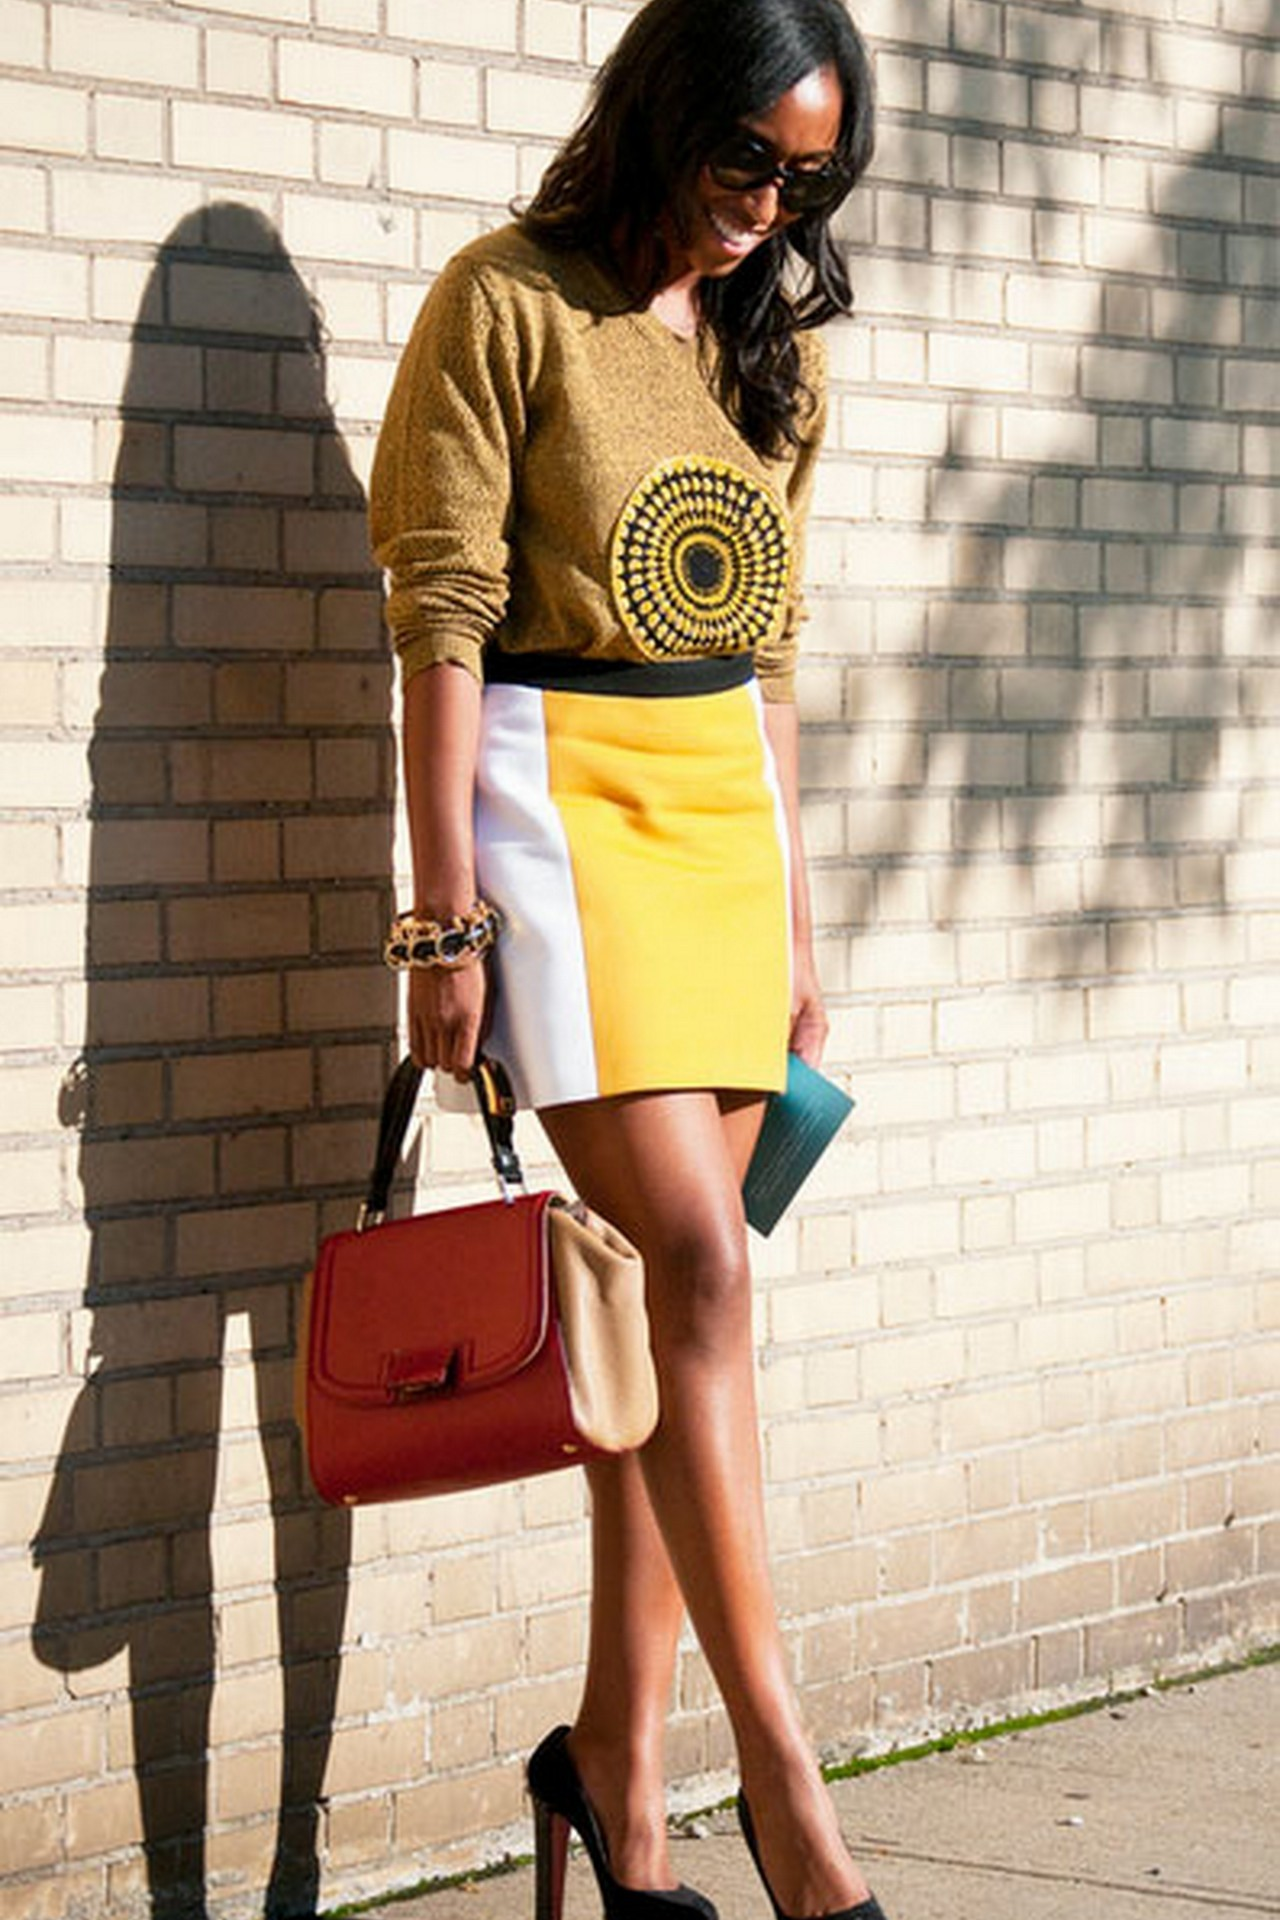 Shiona TuriniOccupation: Fashion and Market Editor at CR Fashion Book #Blackfashion on FacebookTwitter @blackFashionbyj